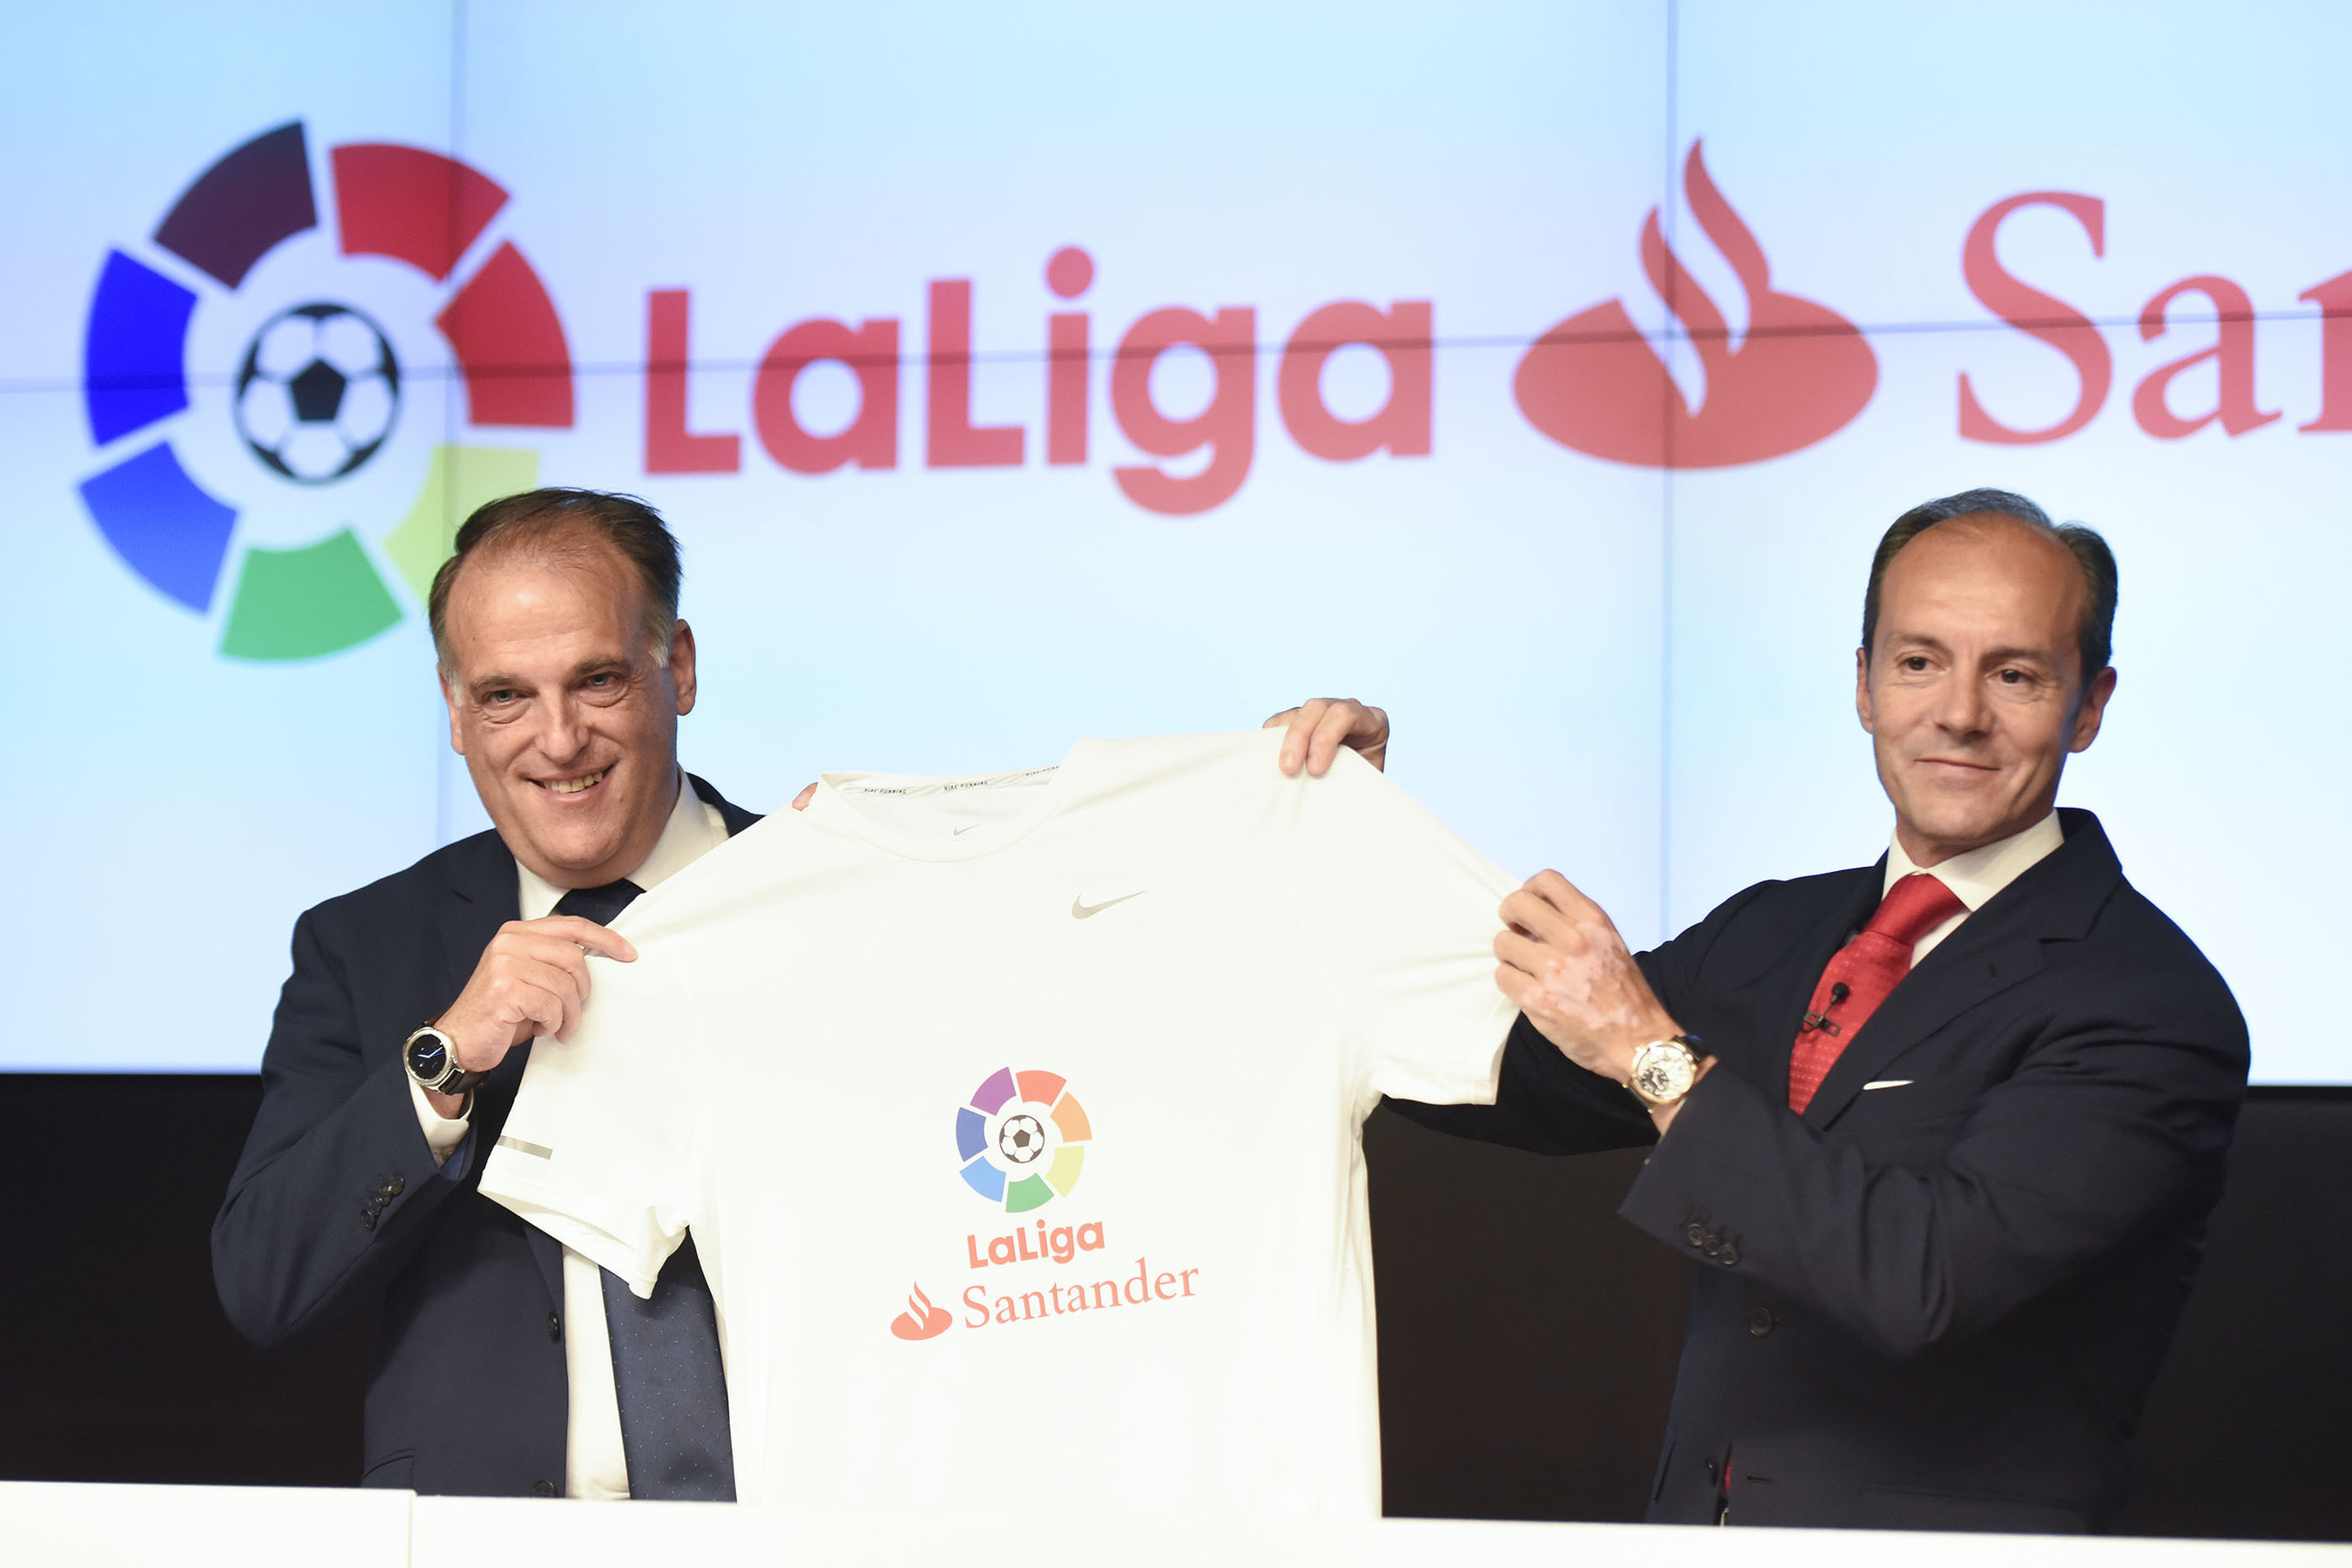 Javier Tebas, President of LaLiga, and Rami Aboukhair, General Manager, Banco Santander Spain, are pictured at the announcement of Santander's new sponsorship of LaLiga in Madrid.